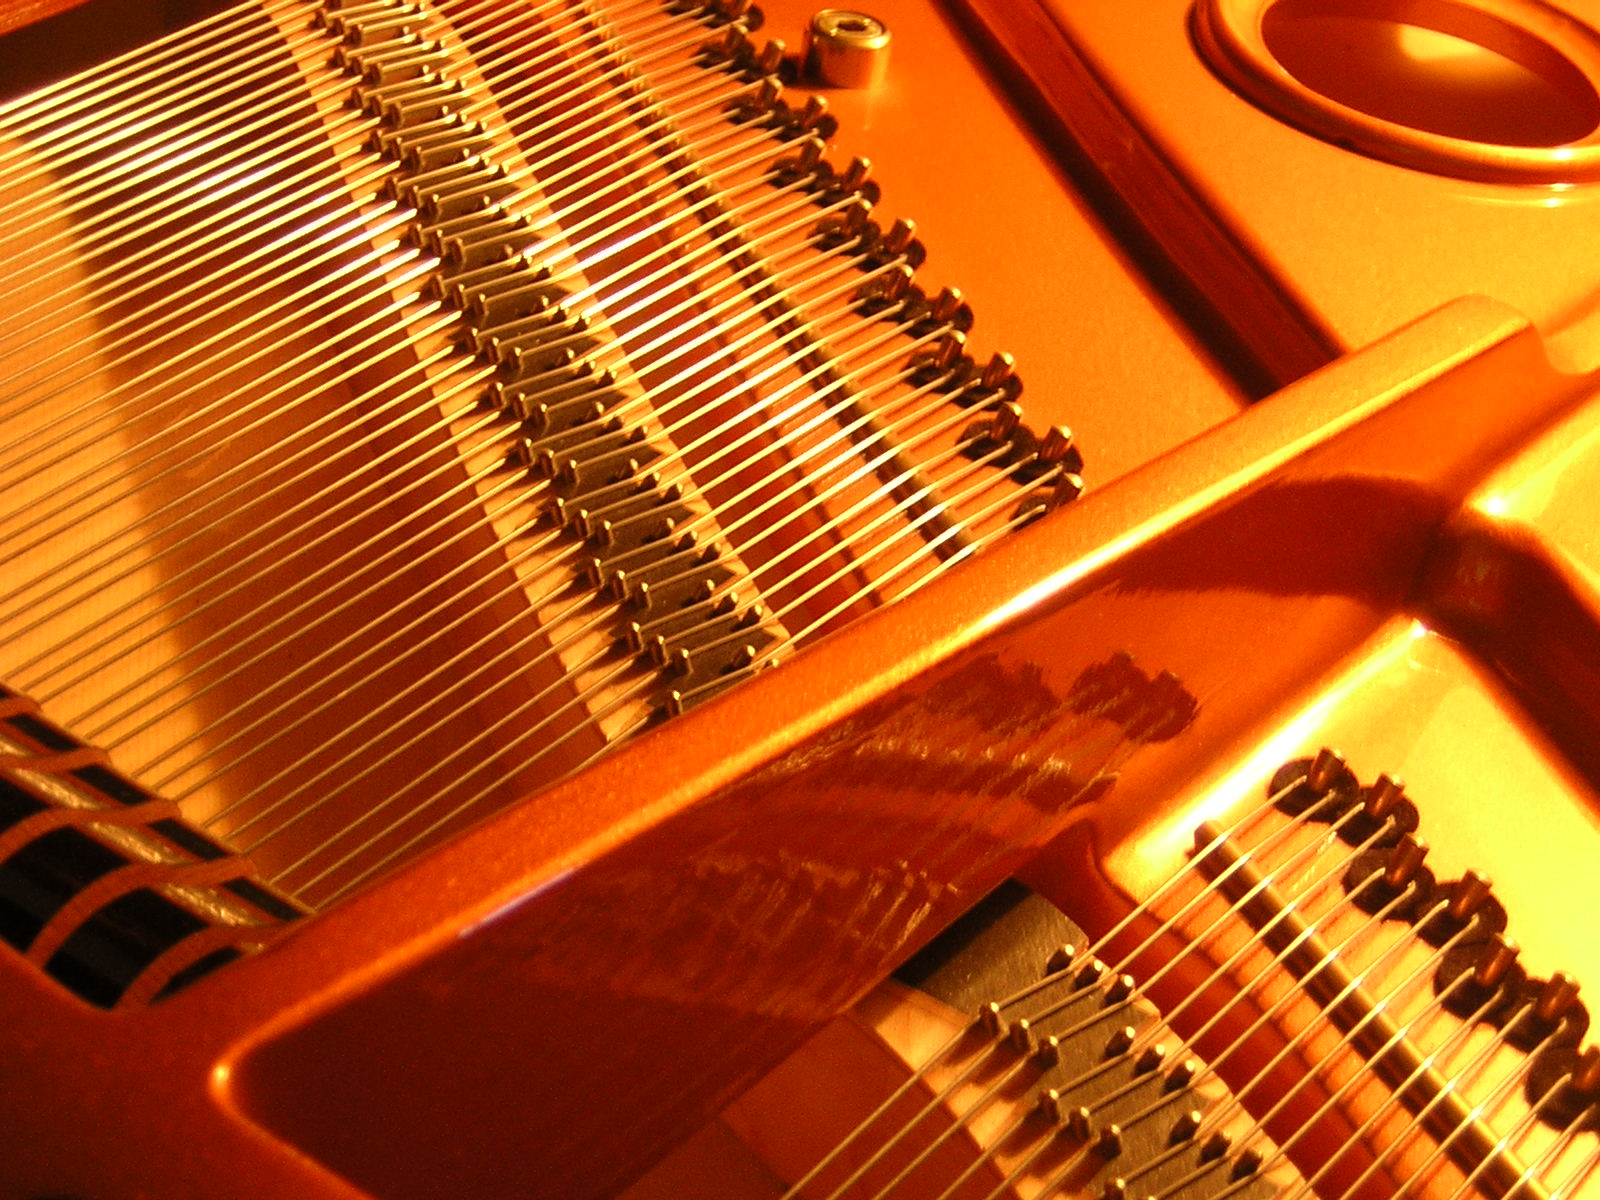 String musical instruments. Types of string instruments 21